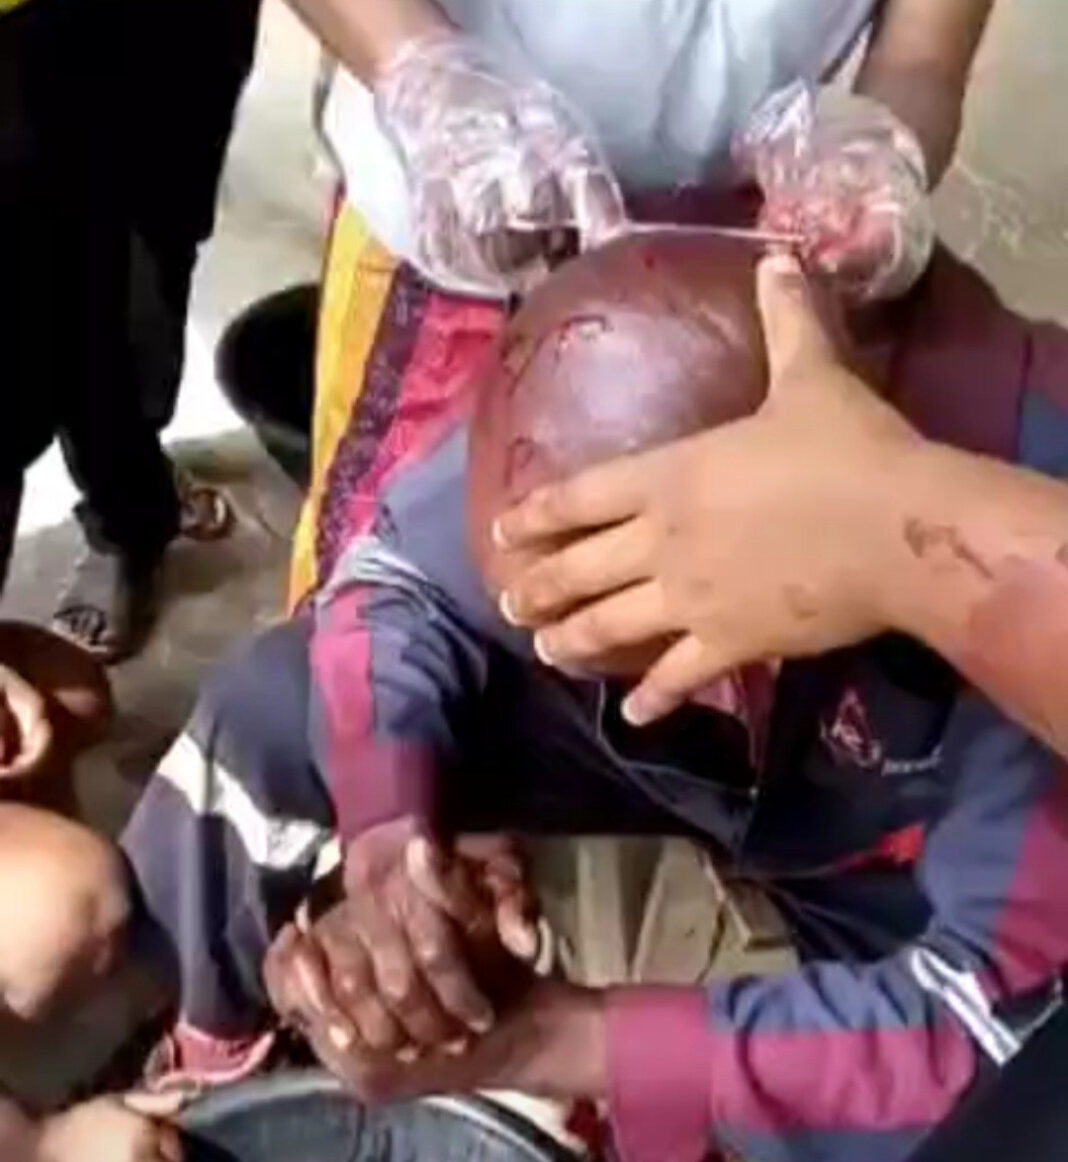 IKEDC staff stabbed on the head with bottle when he tried to disconnect power from a community (video)